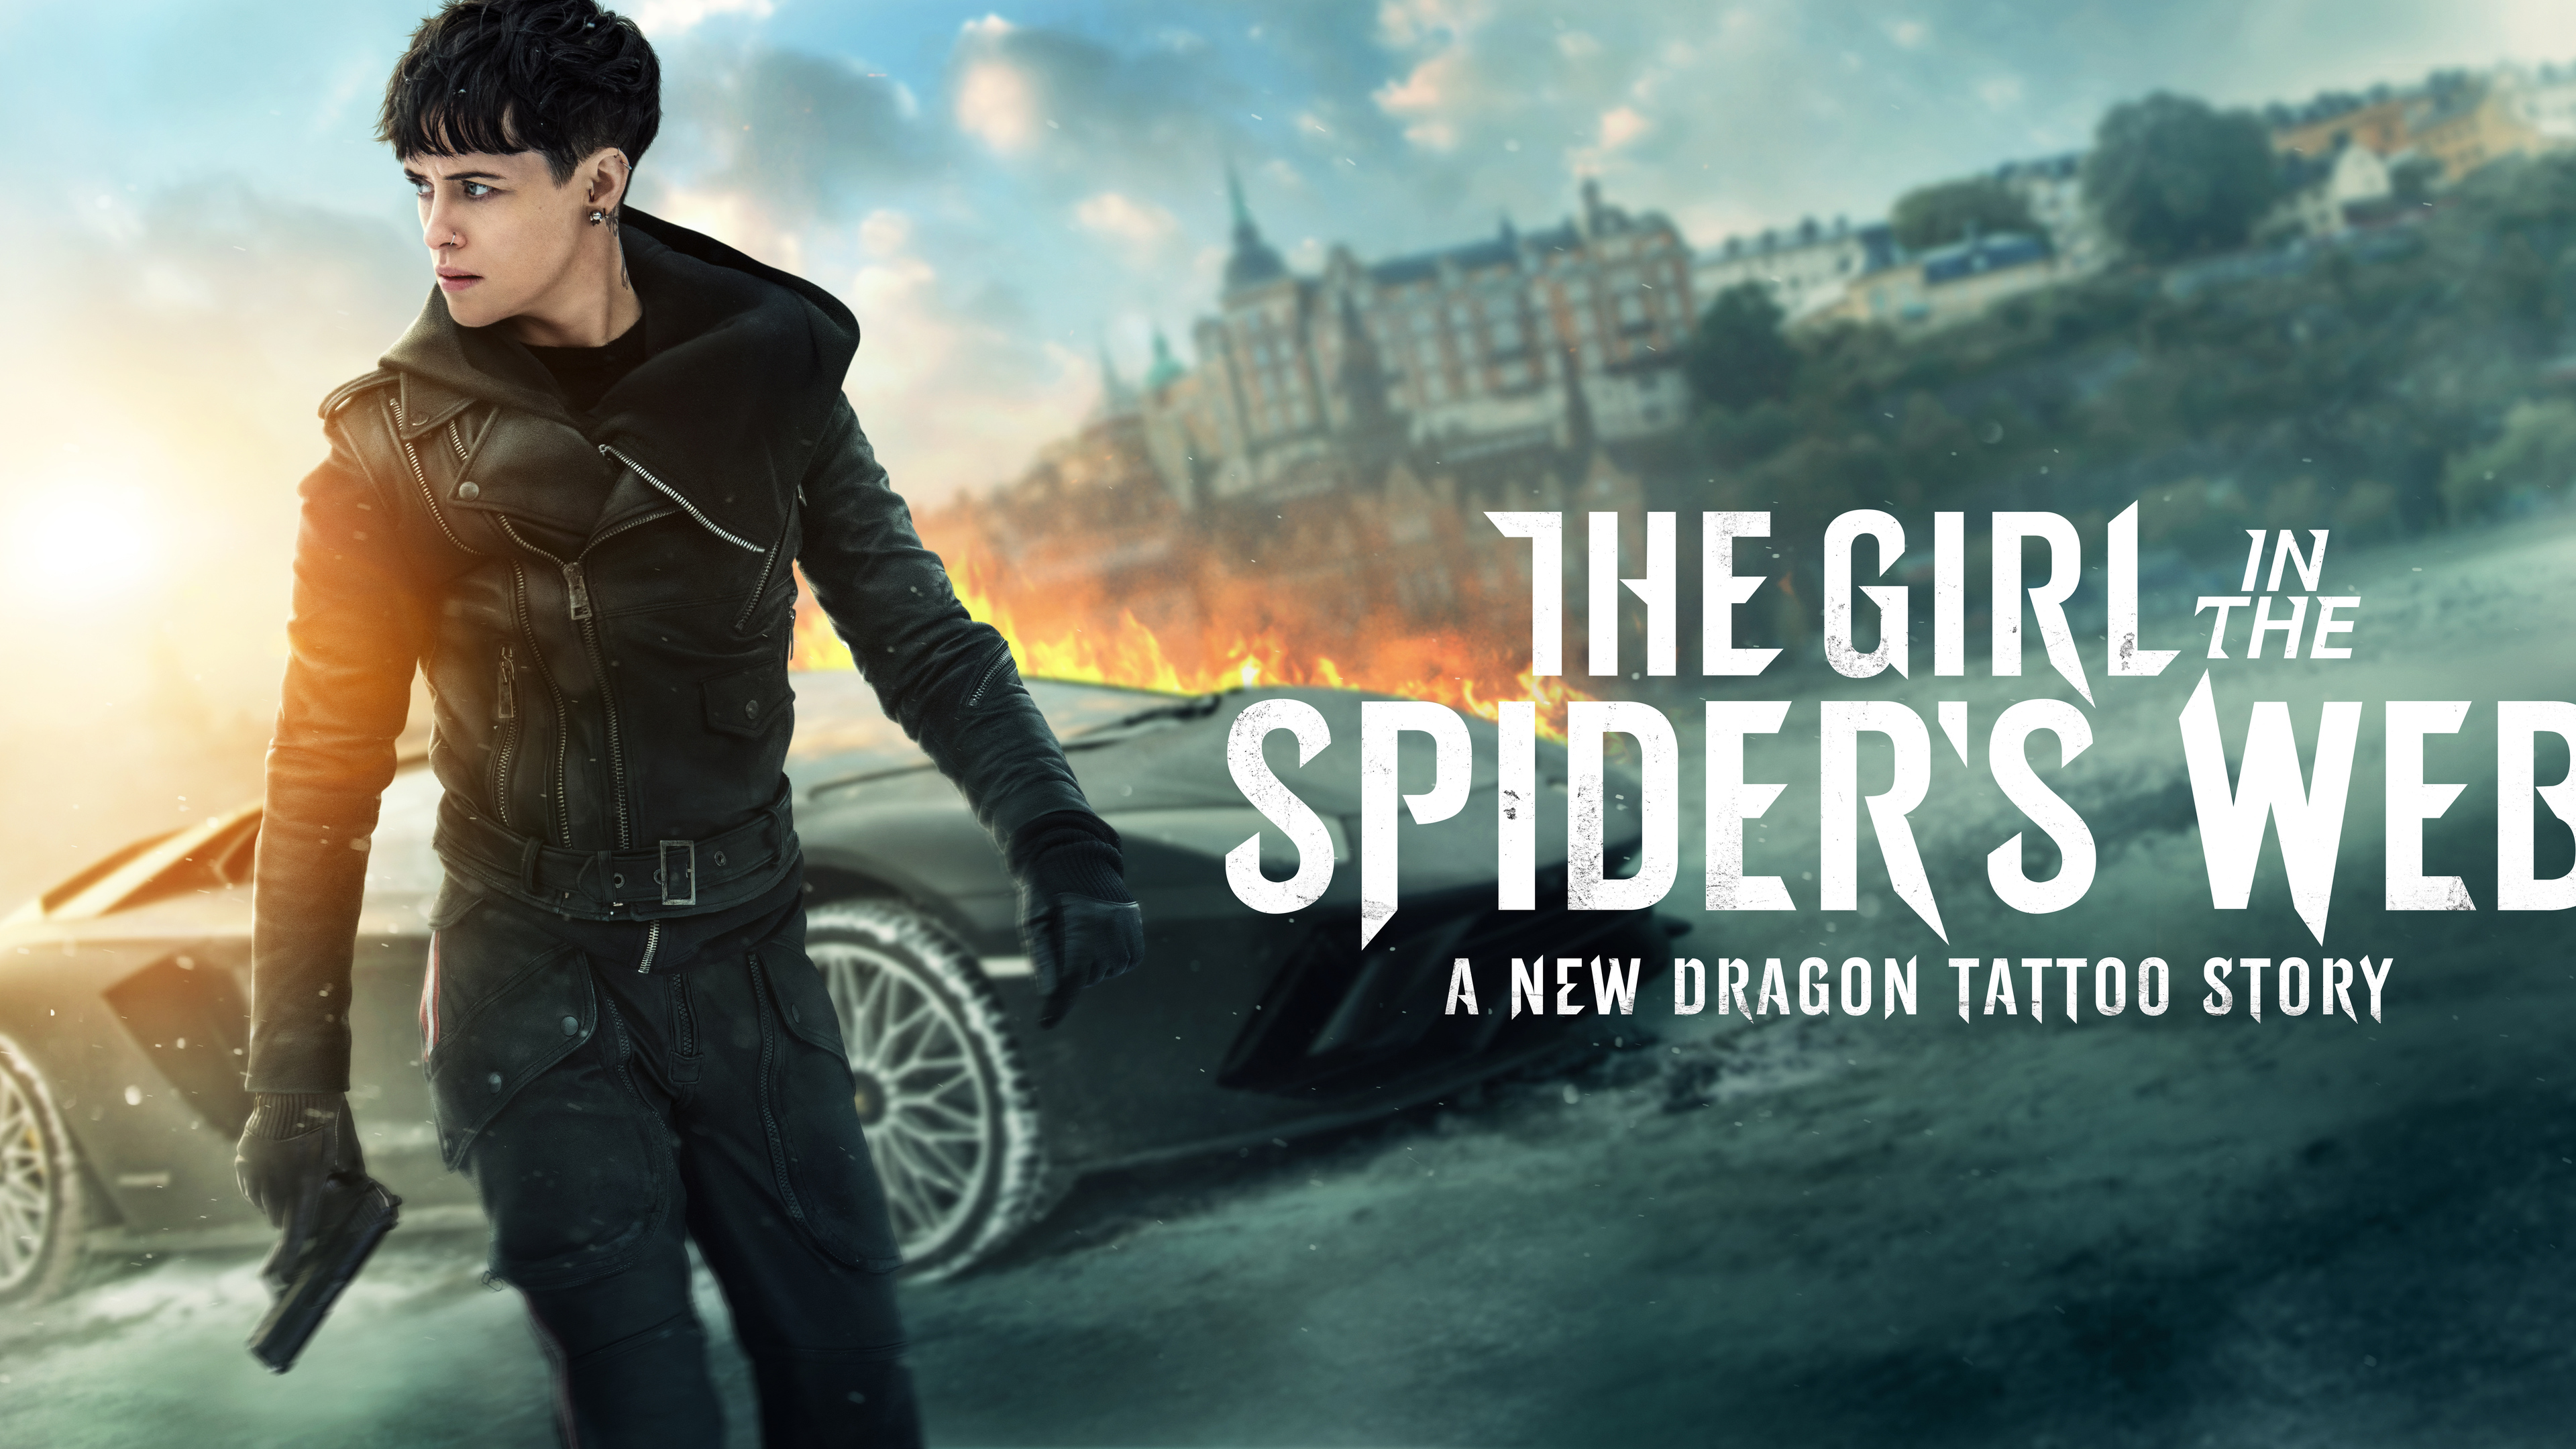 2018 the girl in the spiders web 8k 1541719452 - 2018 The Girl In The Spiders Web 8k - the girl in the spiders web wallpapers, movies wallpapers, hd-wallpapers, 8k wallpapers, 5k wallpapers, 4k-wallpapers, 2018-movies-wallpapers